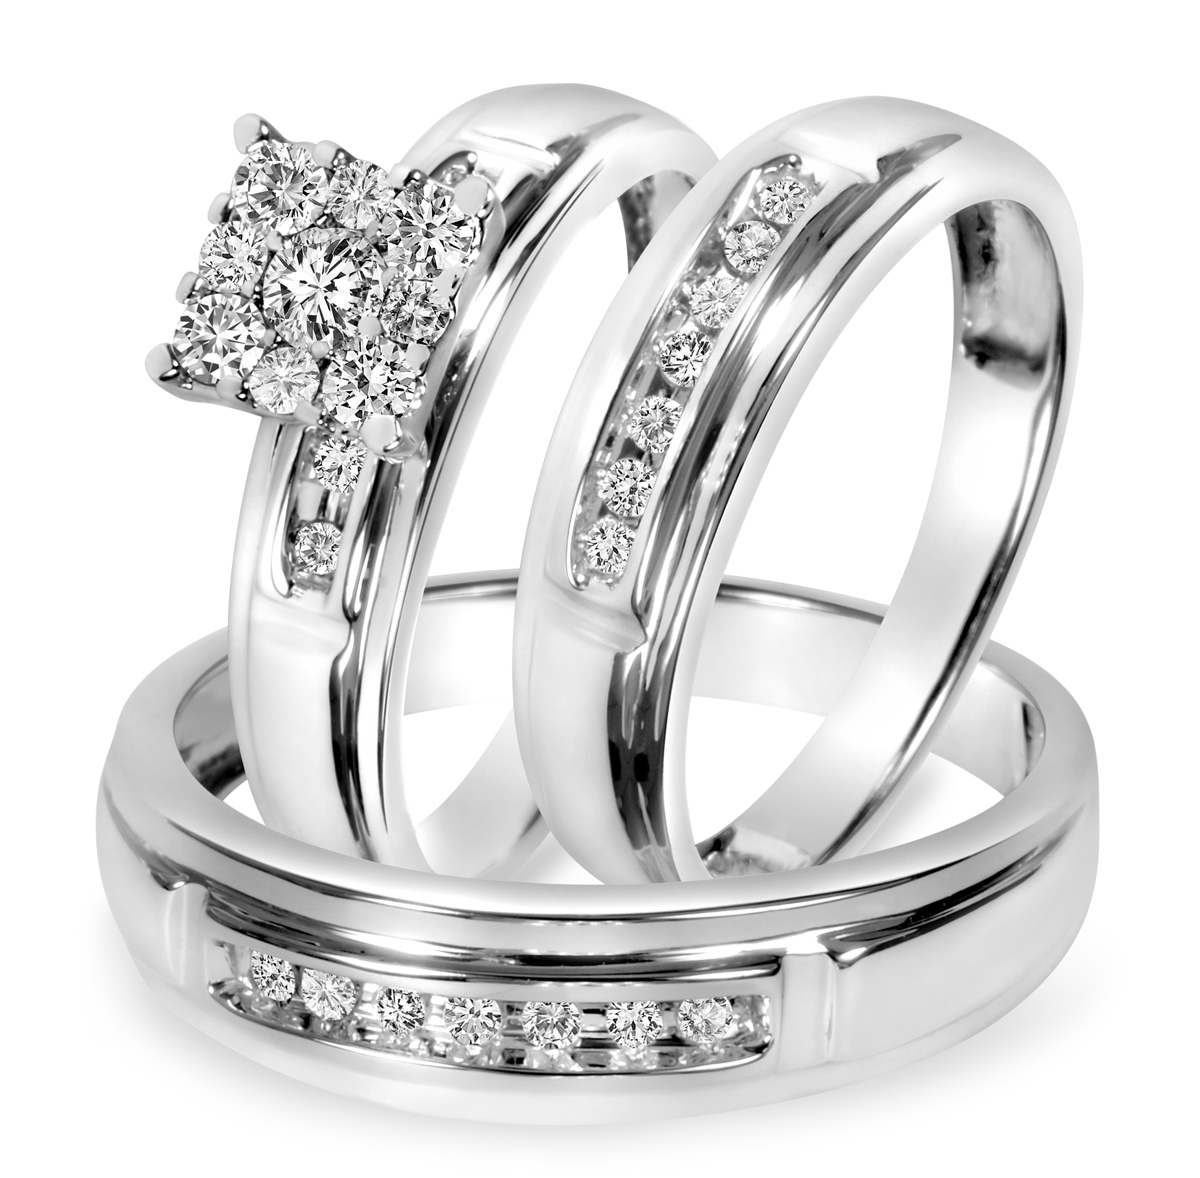 12 CT TW Diamond Trio Matching Wedding Ring Set 10K White Gold